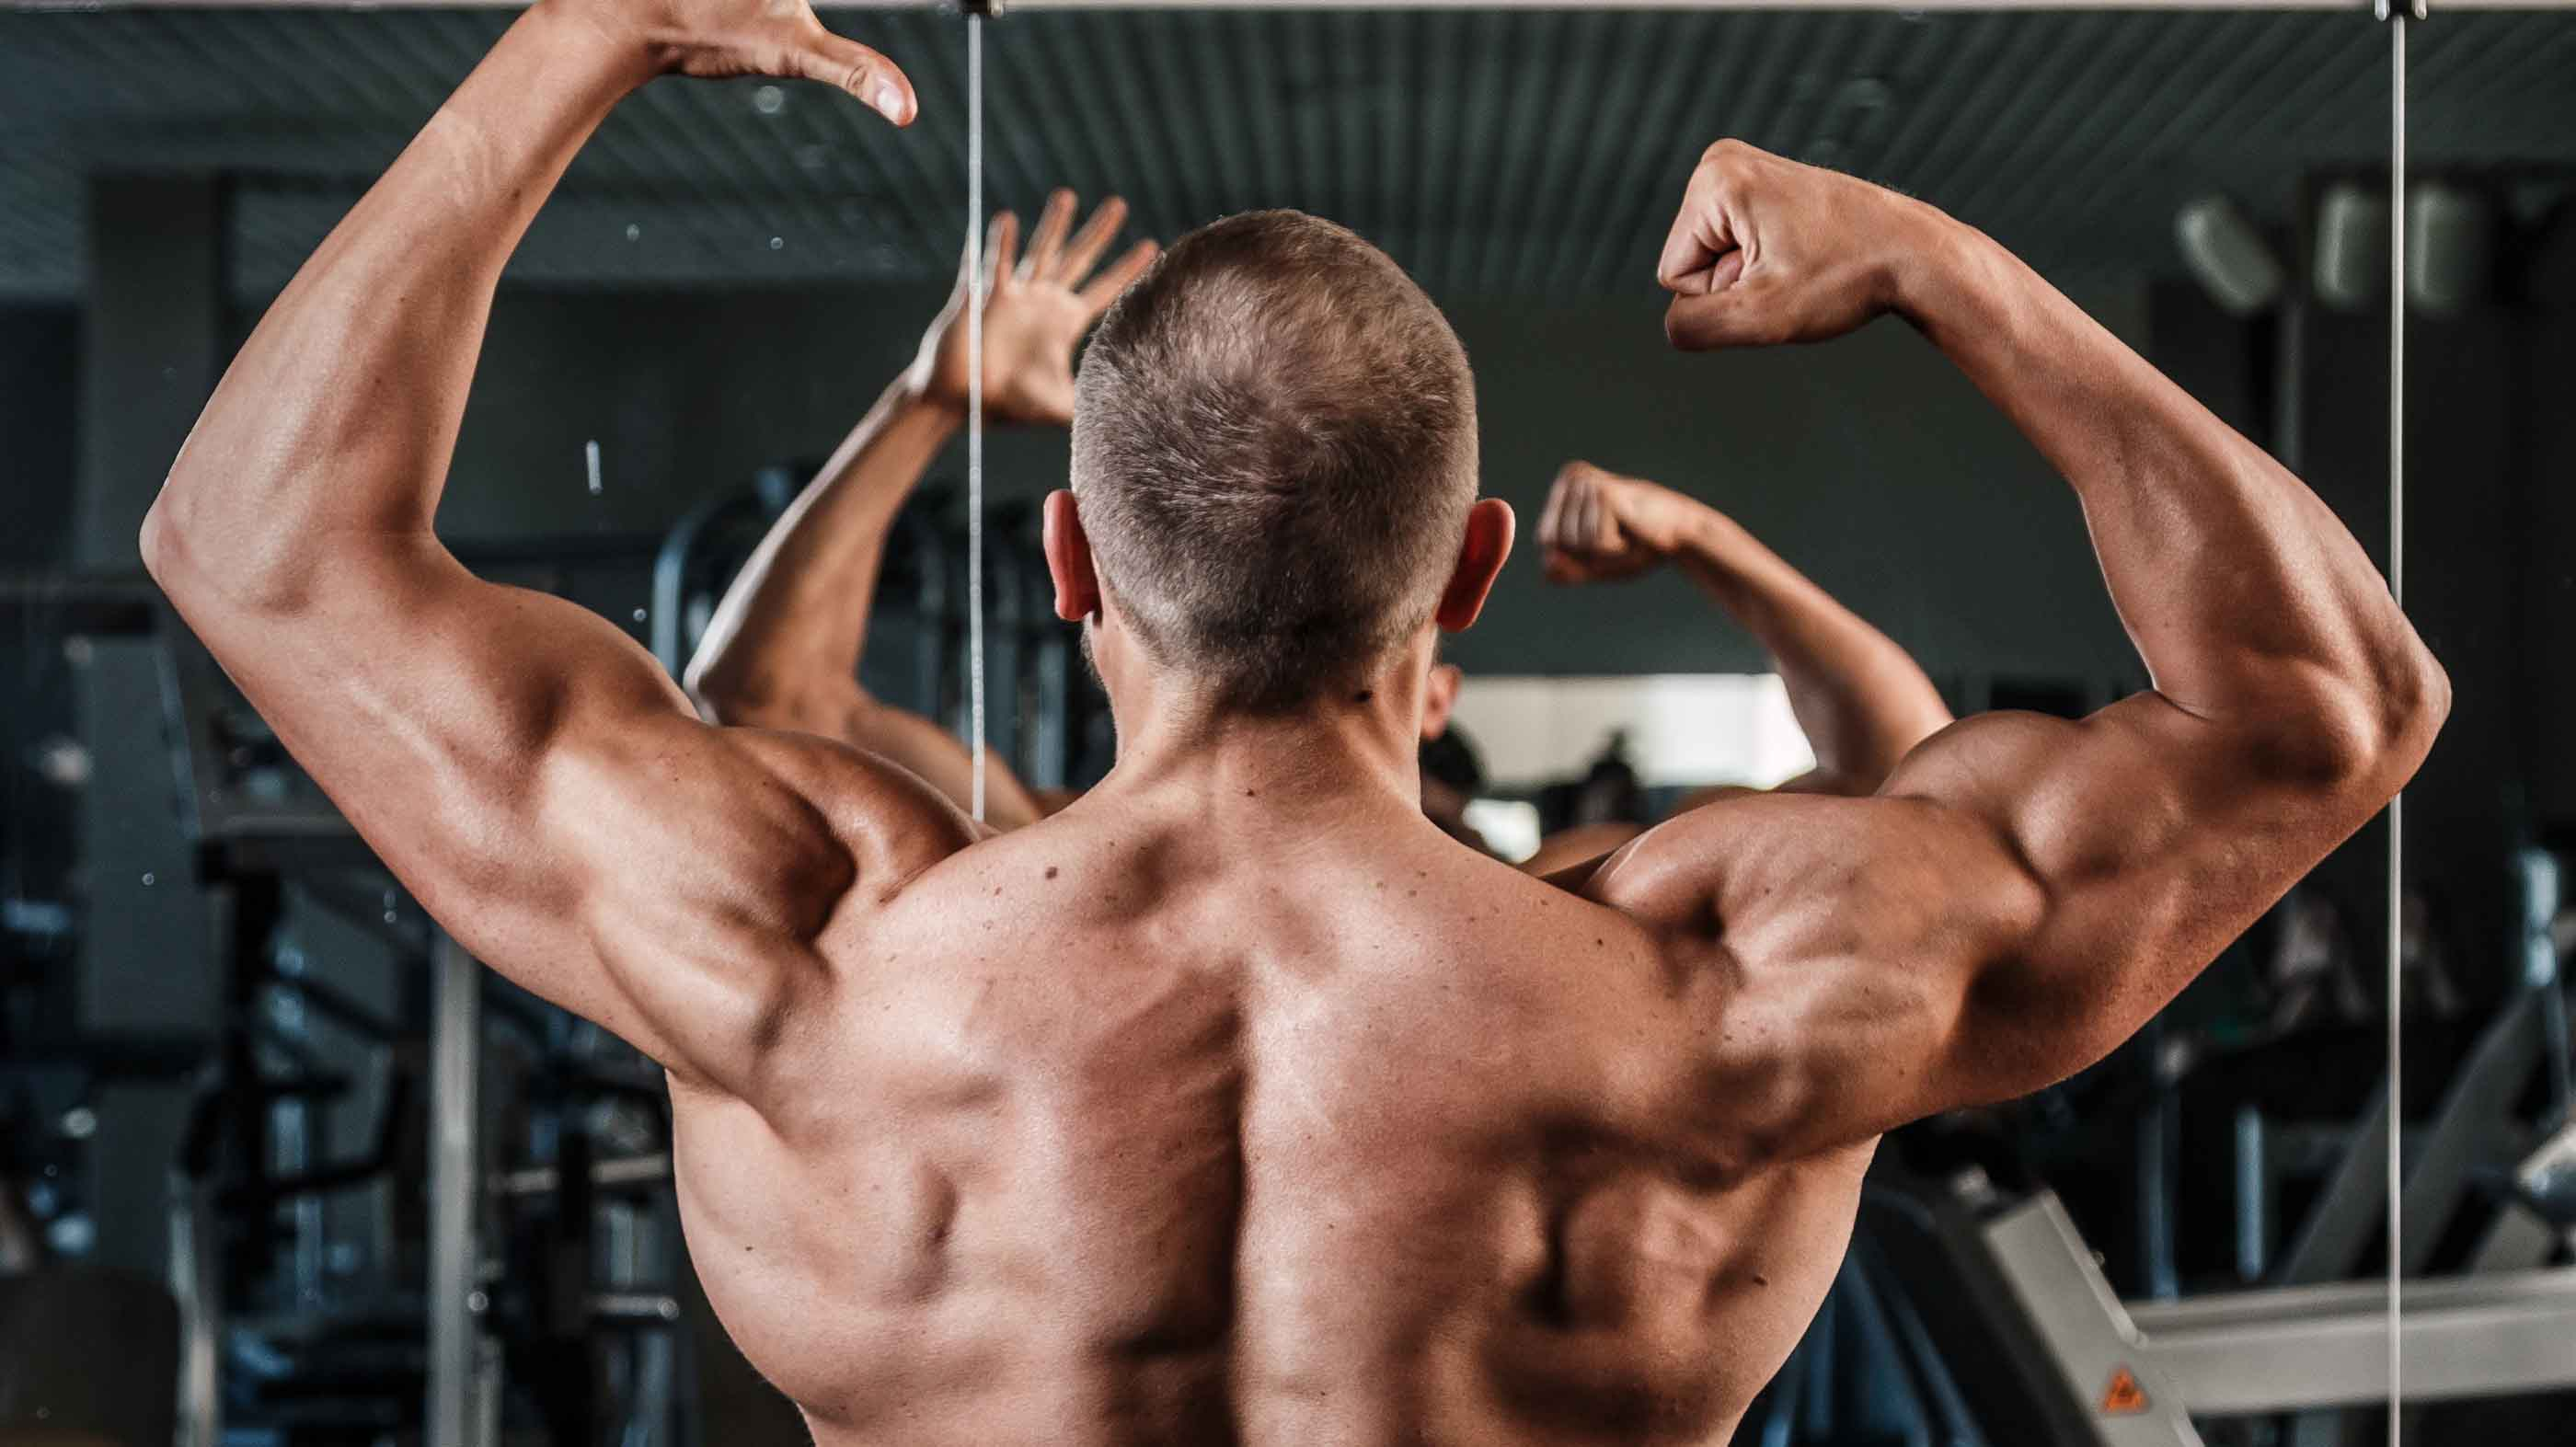 A Simple Body Building Routine: Learn How To Gain Muscle